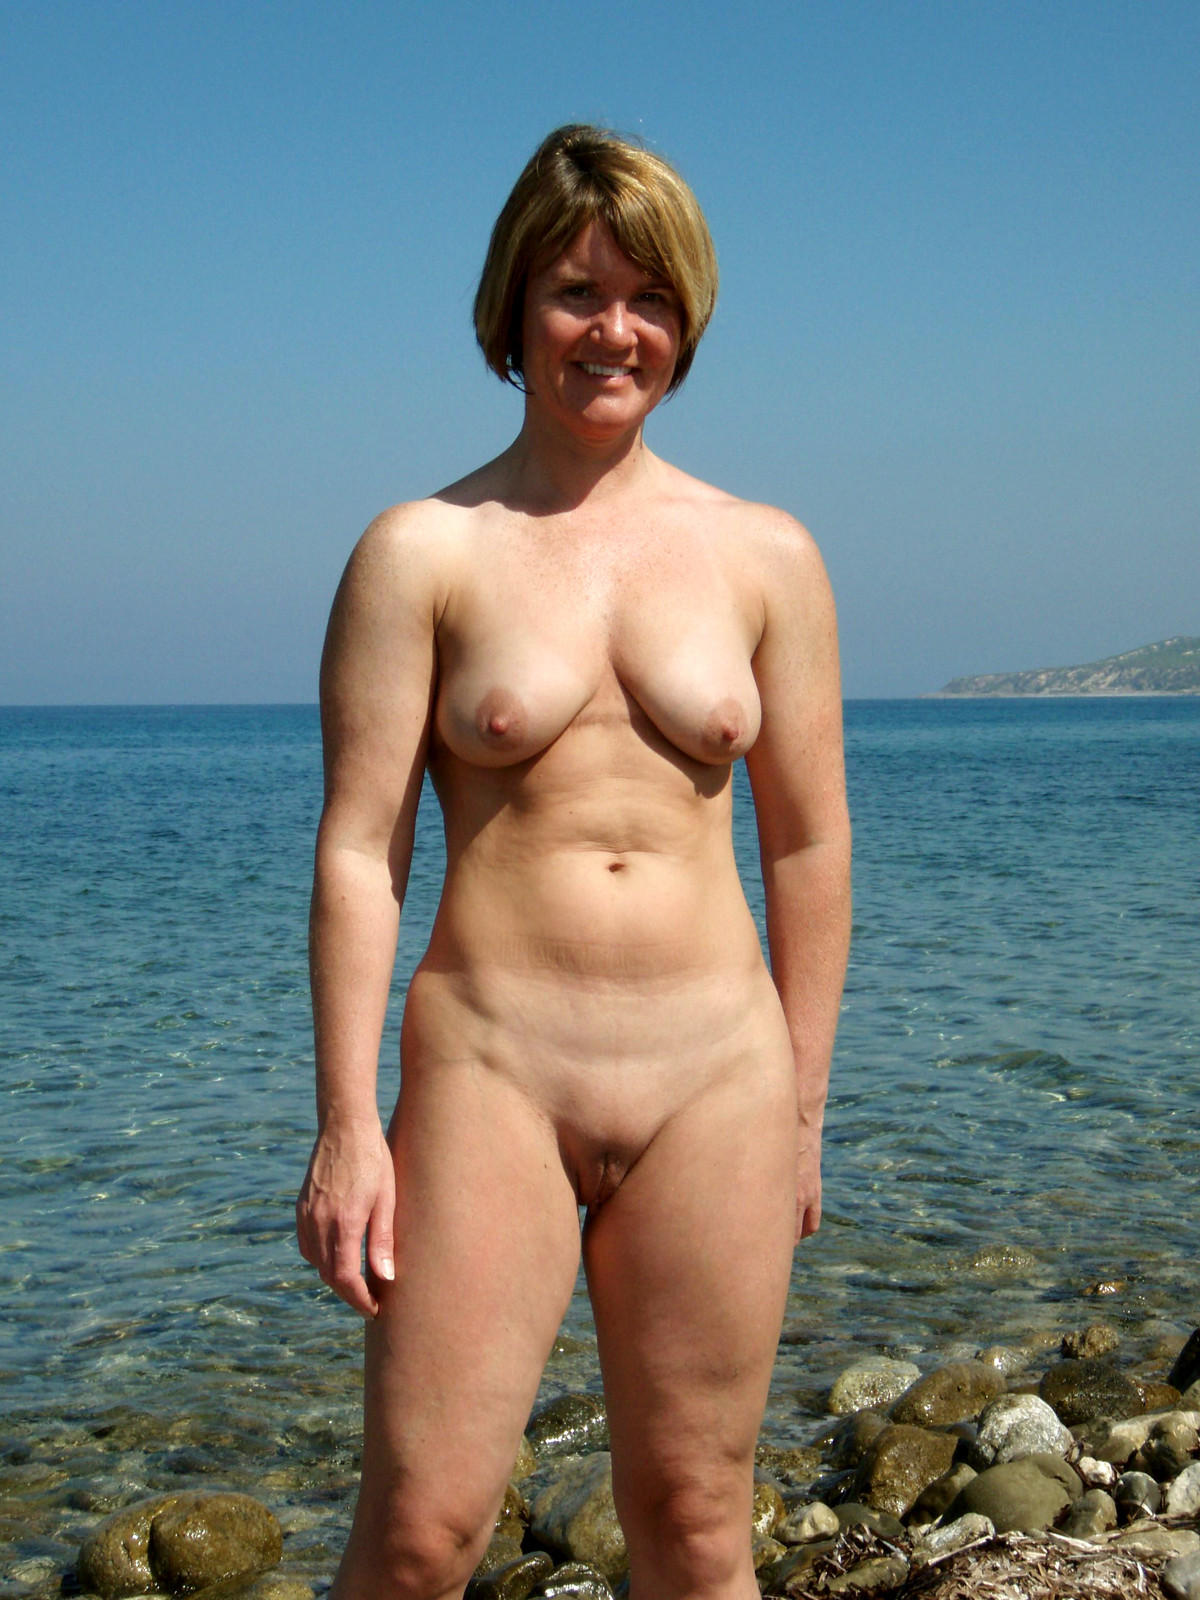 nudist and naturist photos jpg 1080x810